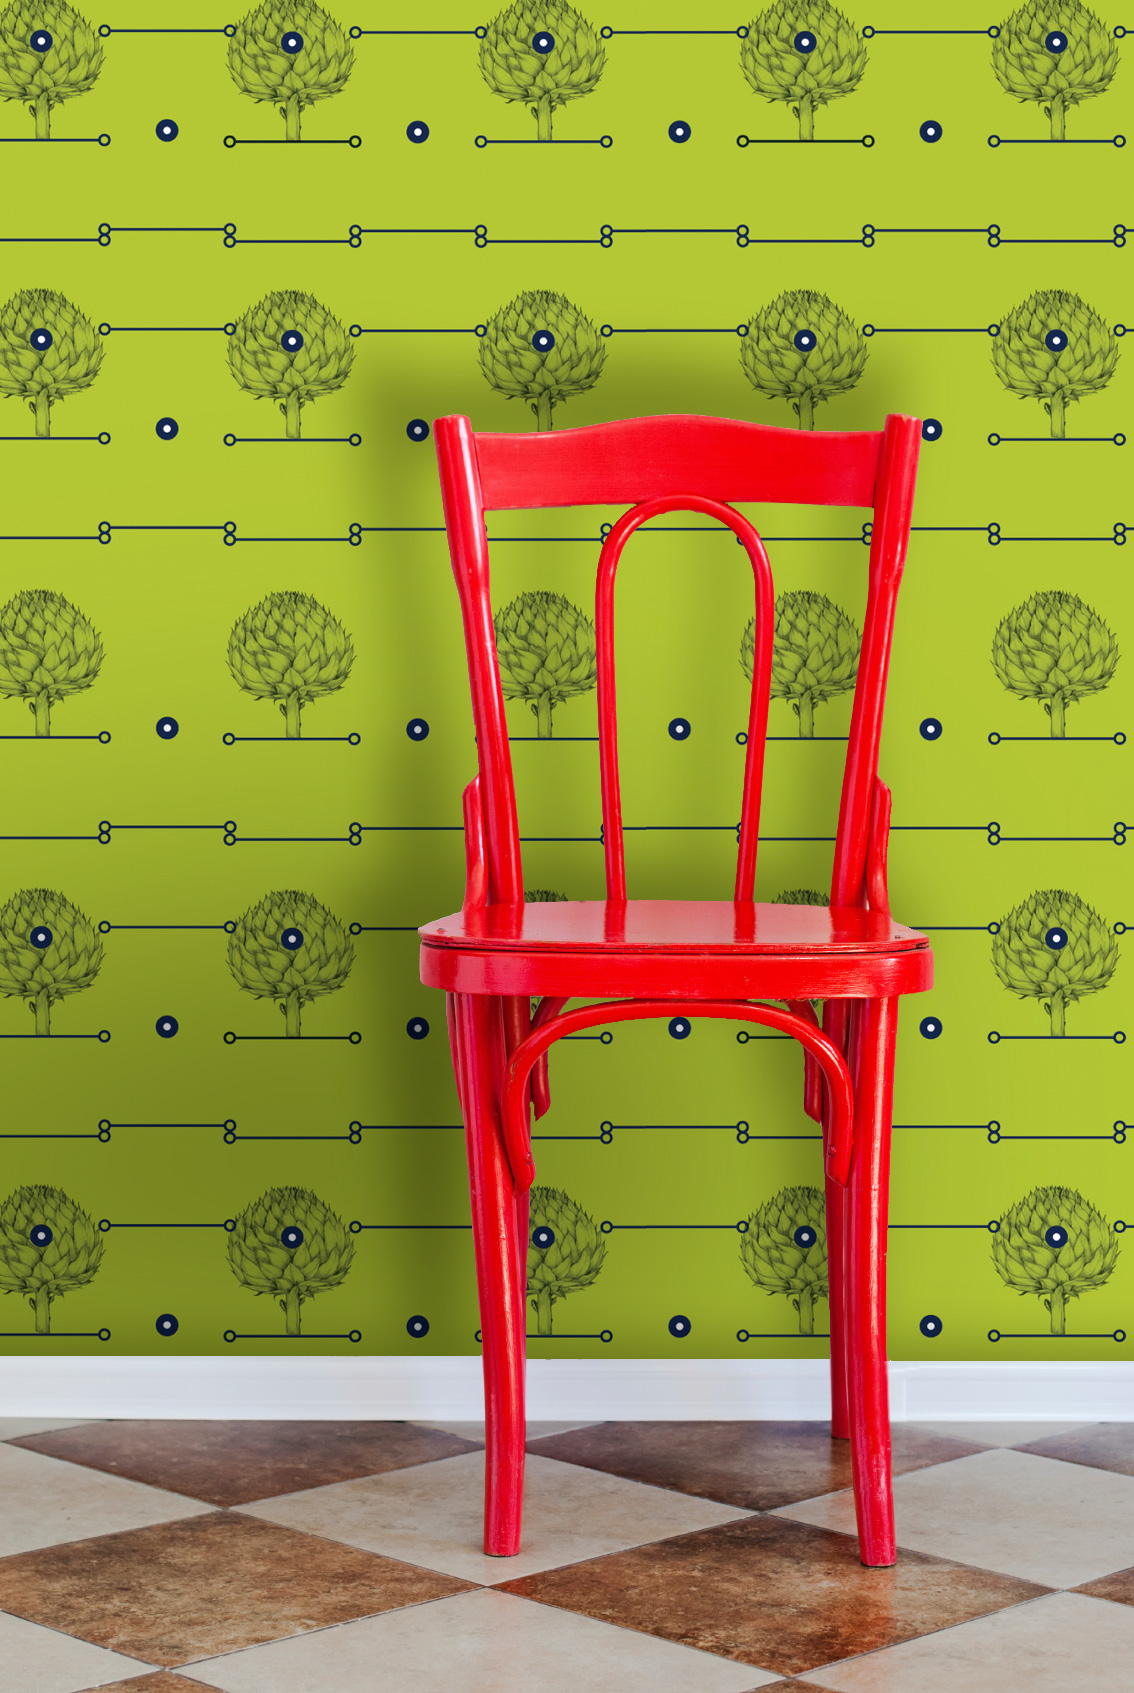 Red-Wooden-Chair-SIR-ARTIE-grass.jpg